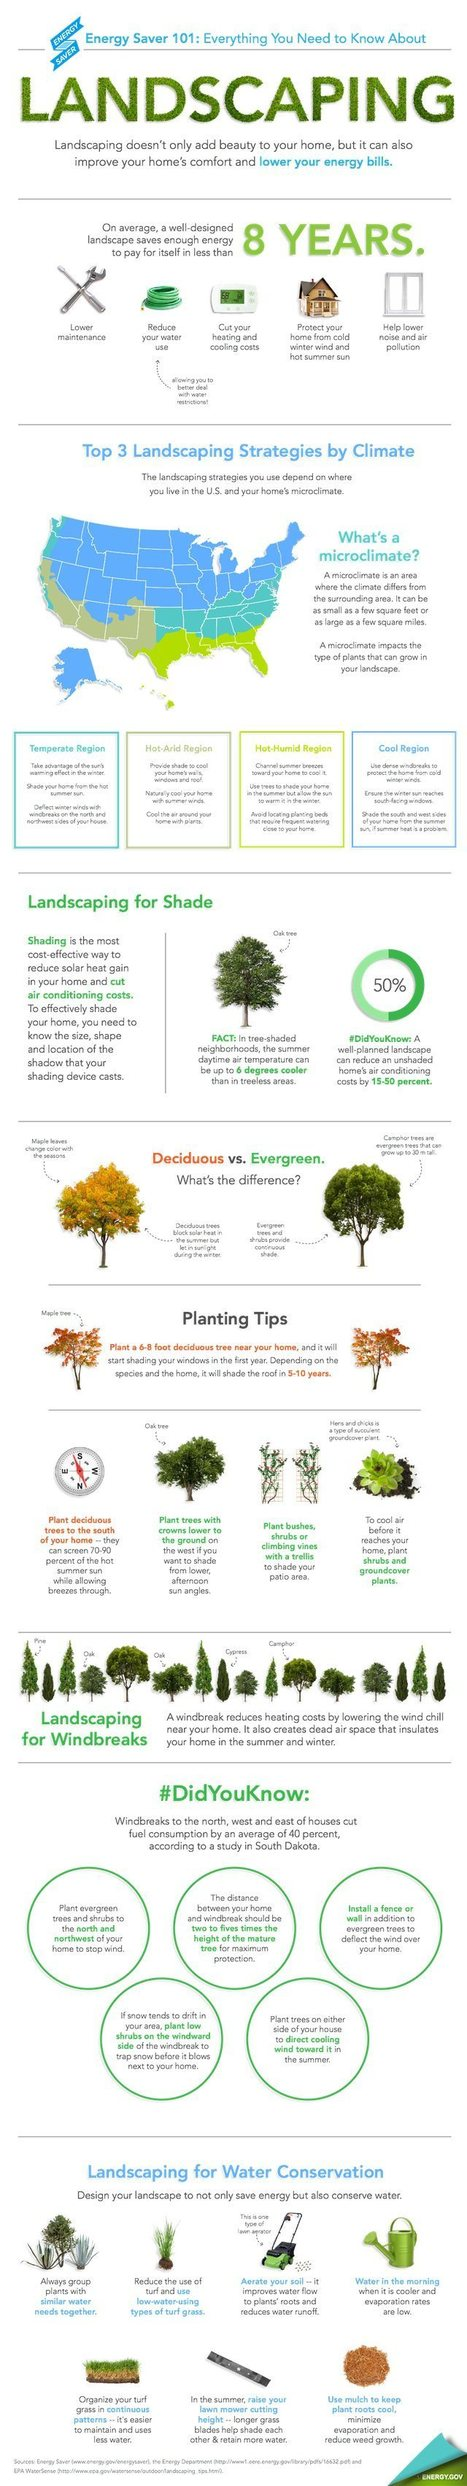 Smart Landscaping Tips To Help You Save Energy (INFOGRAPHIC) | Suburban Land Trusts | Scoop.it